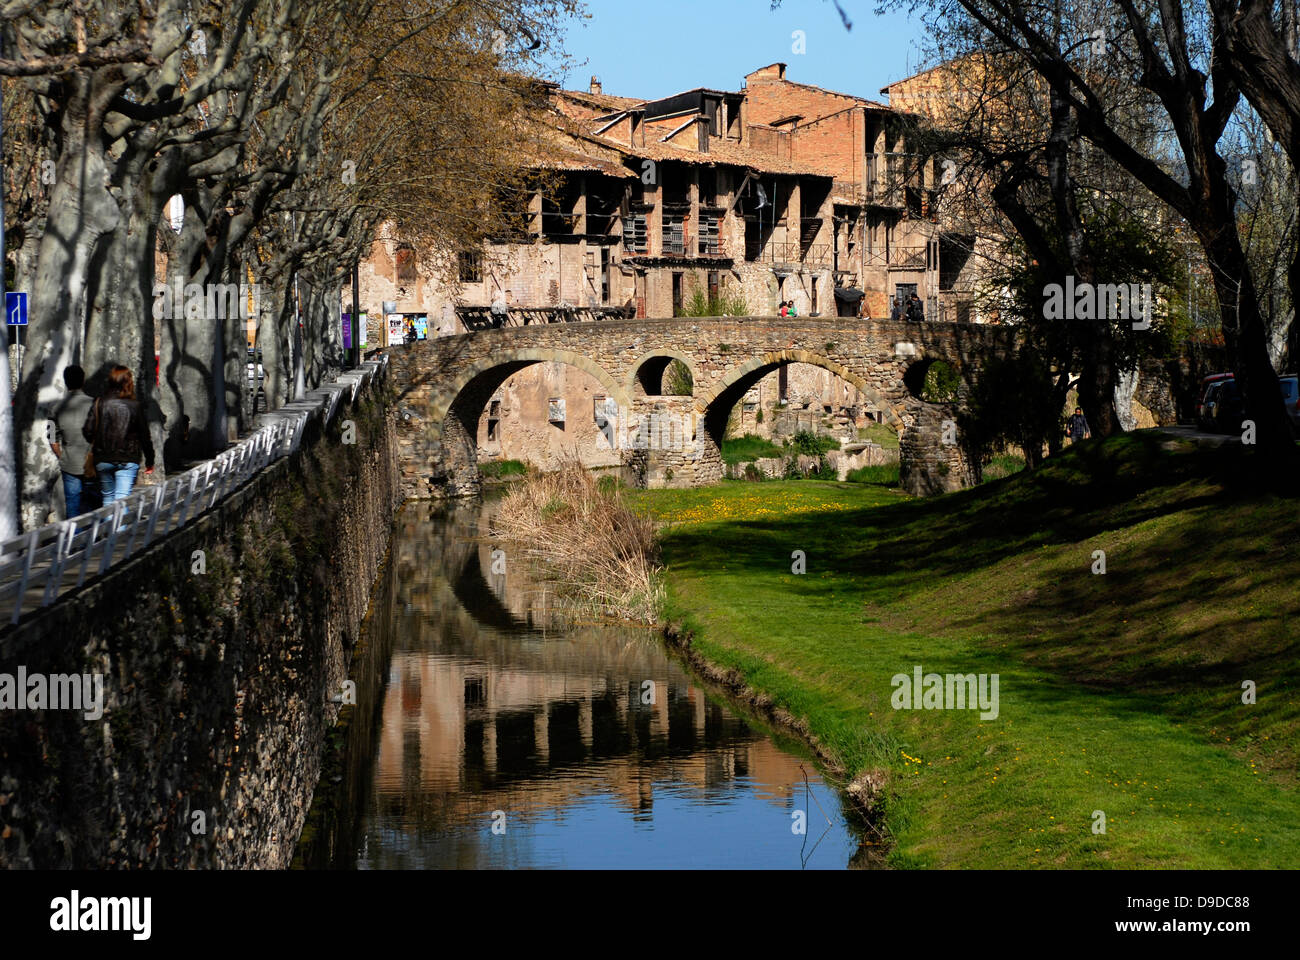 River,  Meder, Bridge, Old, Ancient, Queralt, Romanesque, adoberies,  Vic, Osona,  Barcelona, Catalonia, Spain, - Stock Image